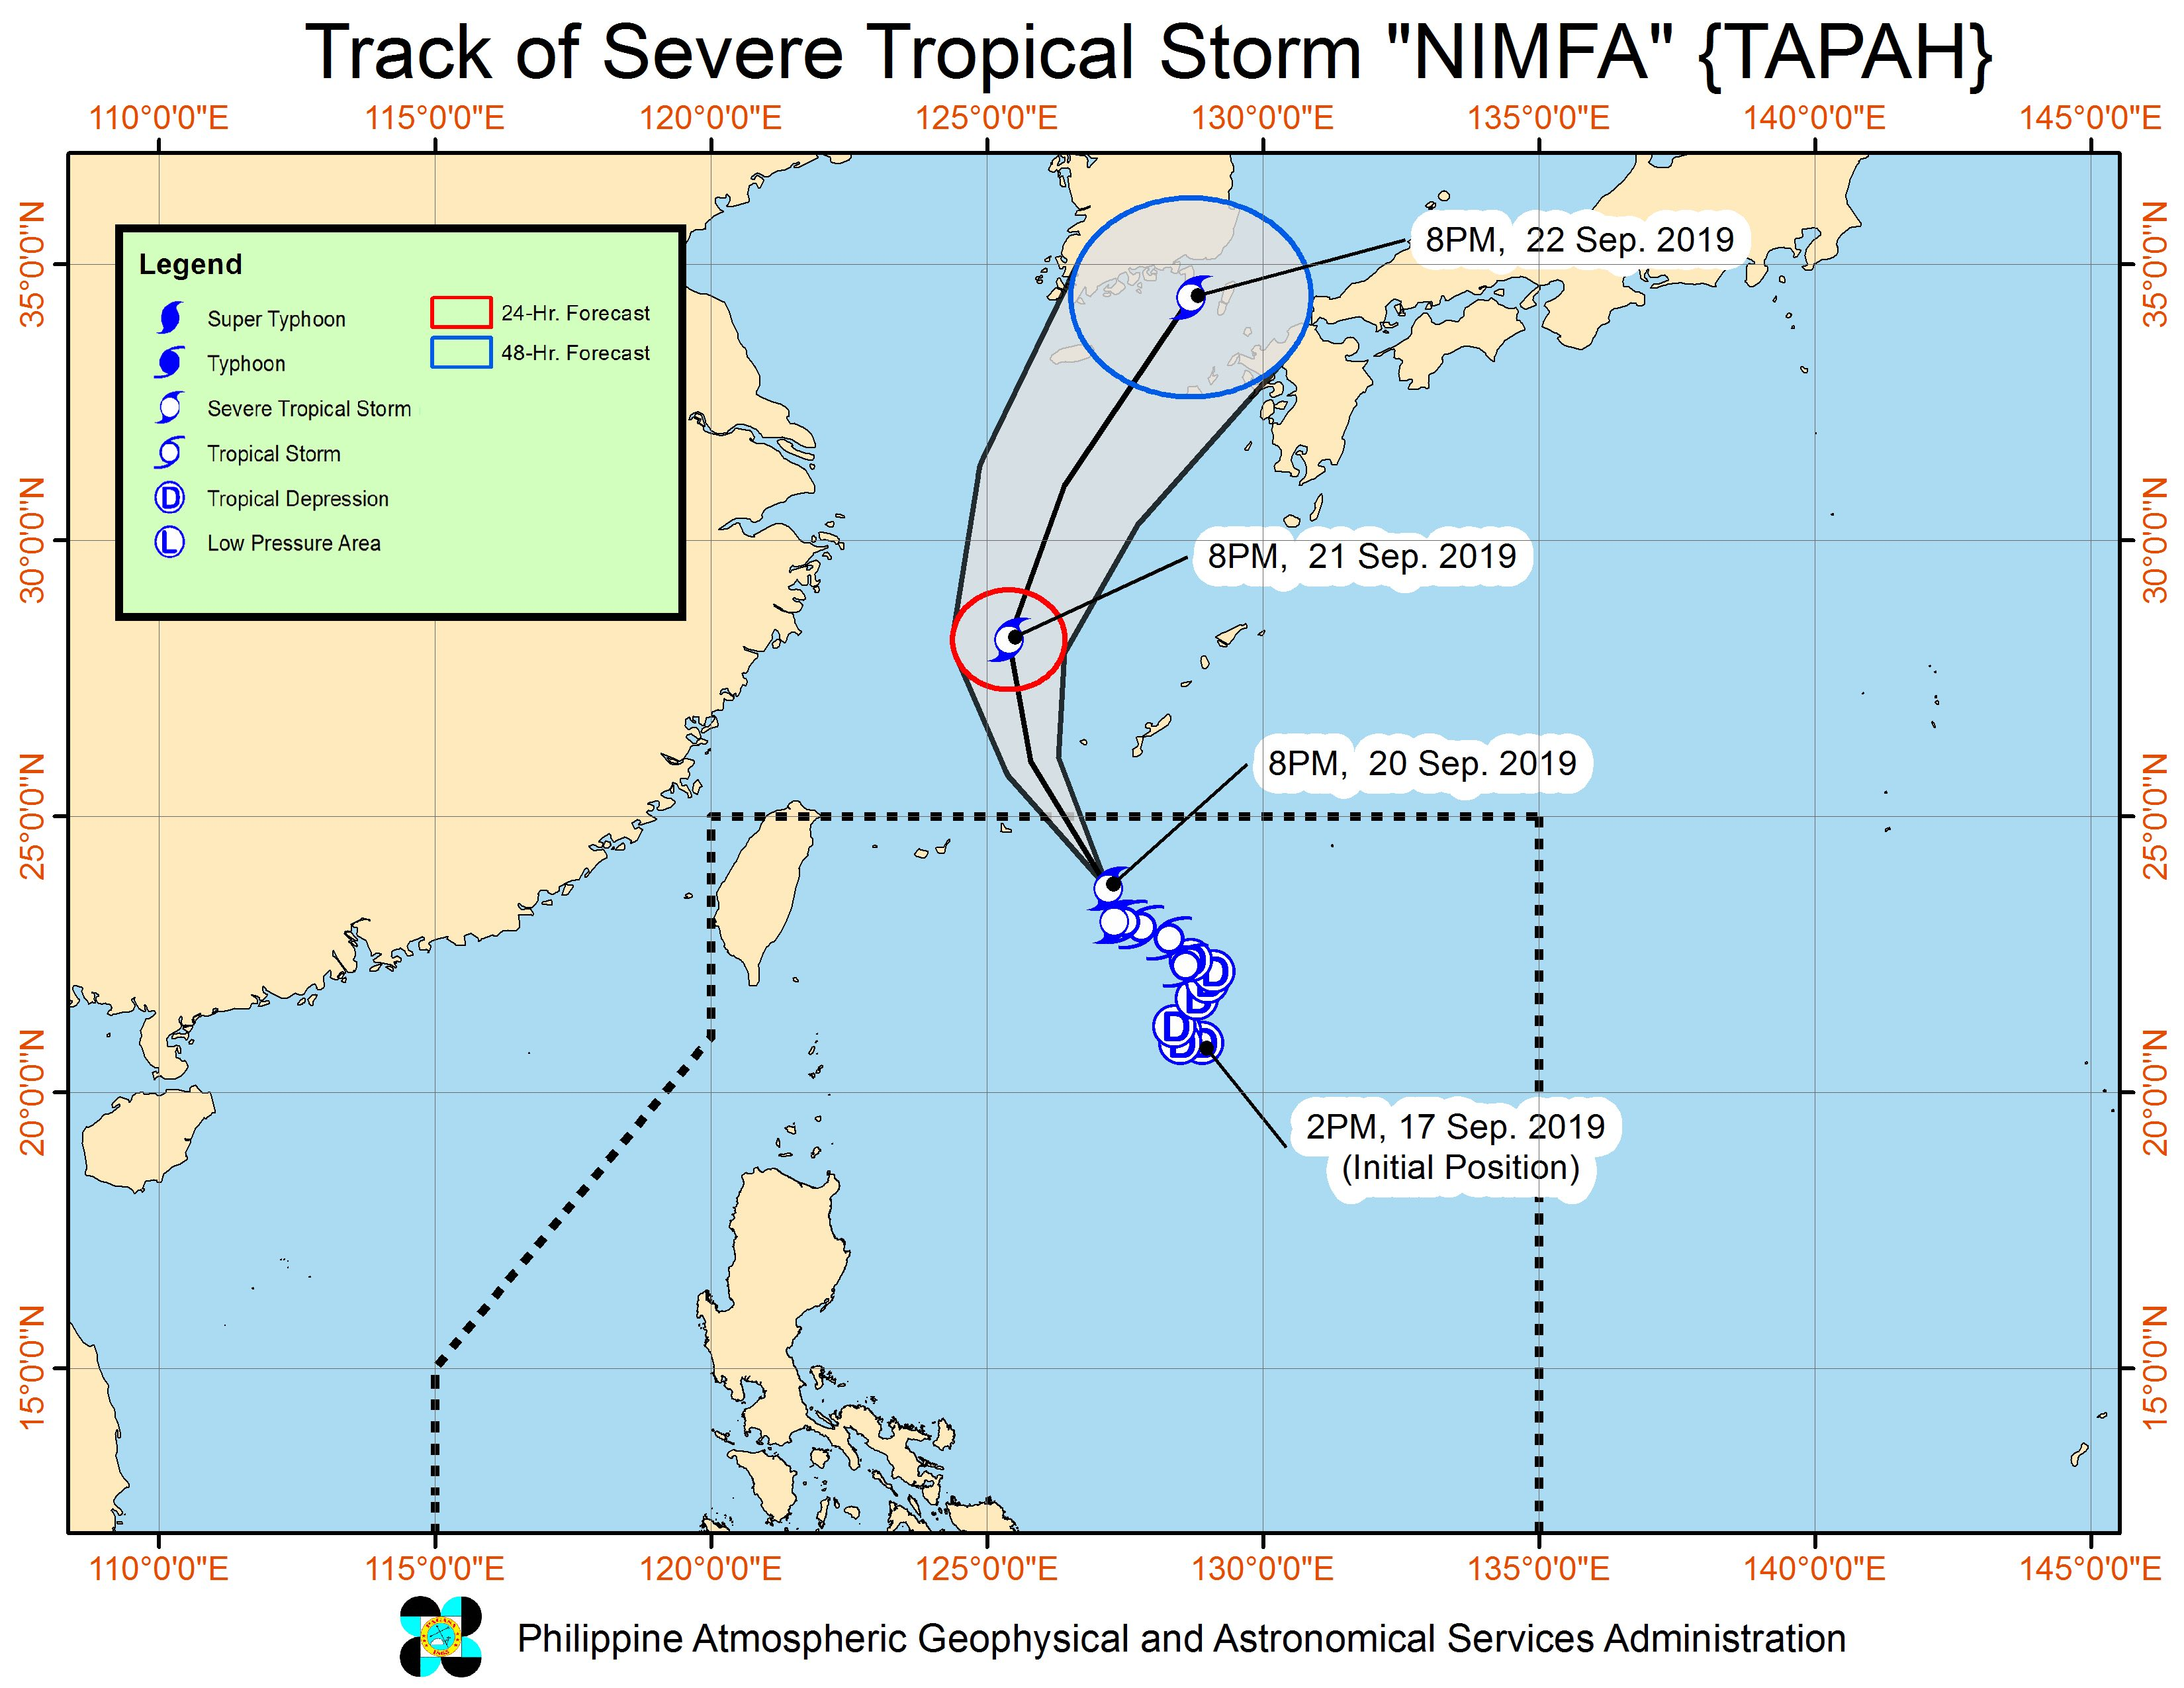 Forecast track of Severe Tropical Storm Nimfa (Tapah) as of September 20, 2019, 11 pm. Image from PAGASA